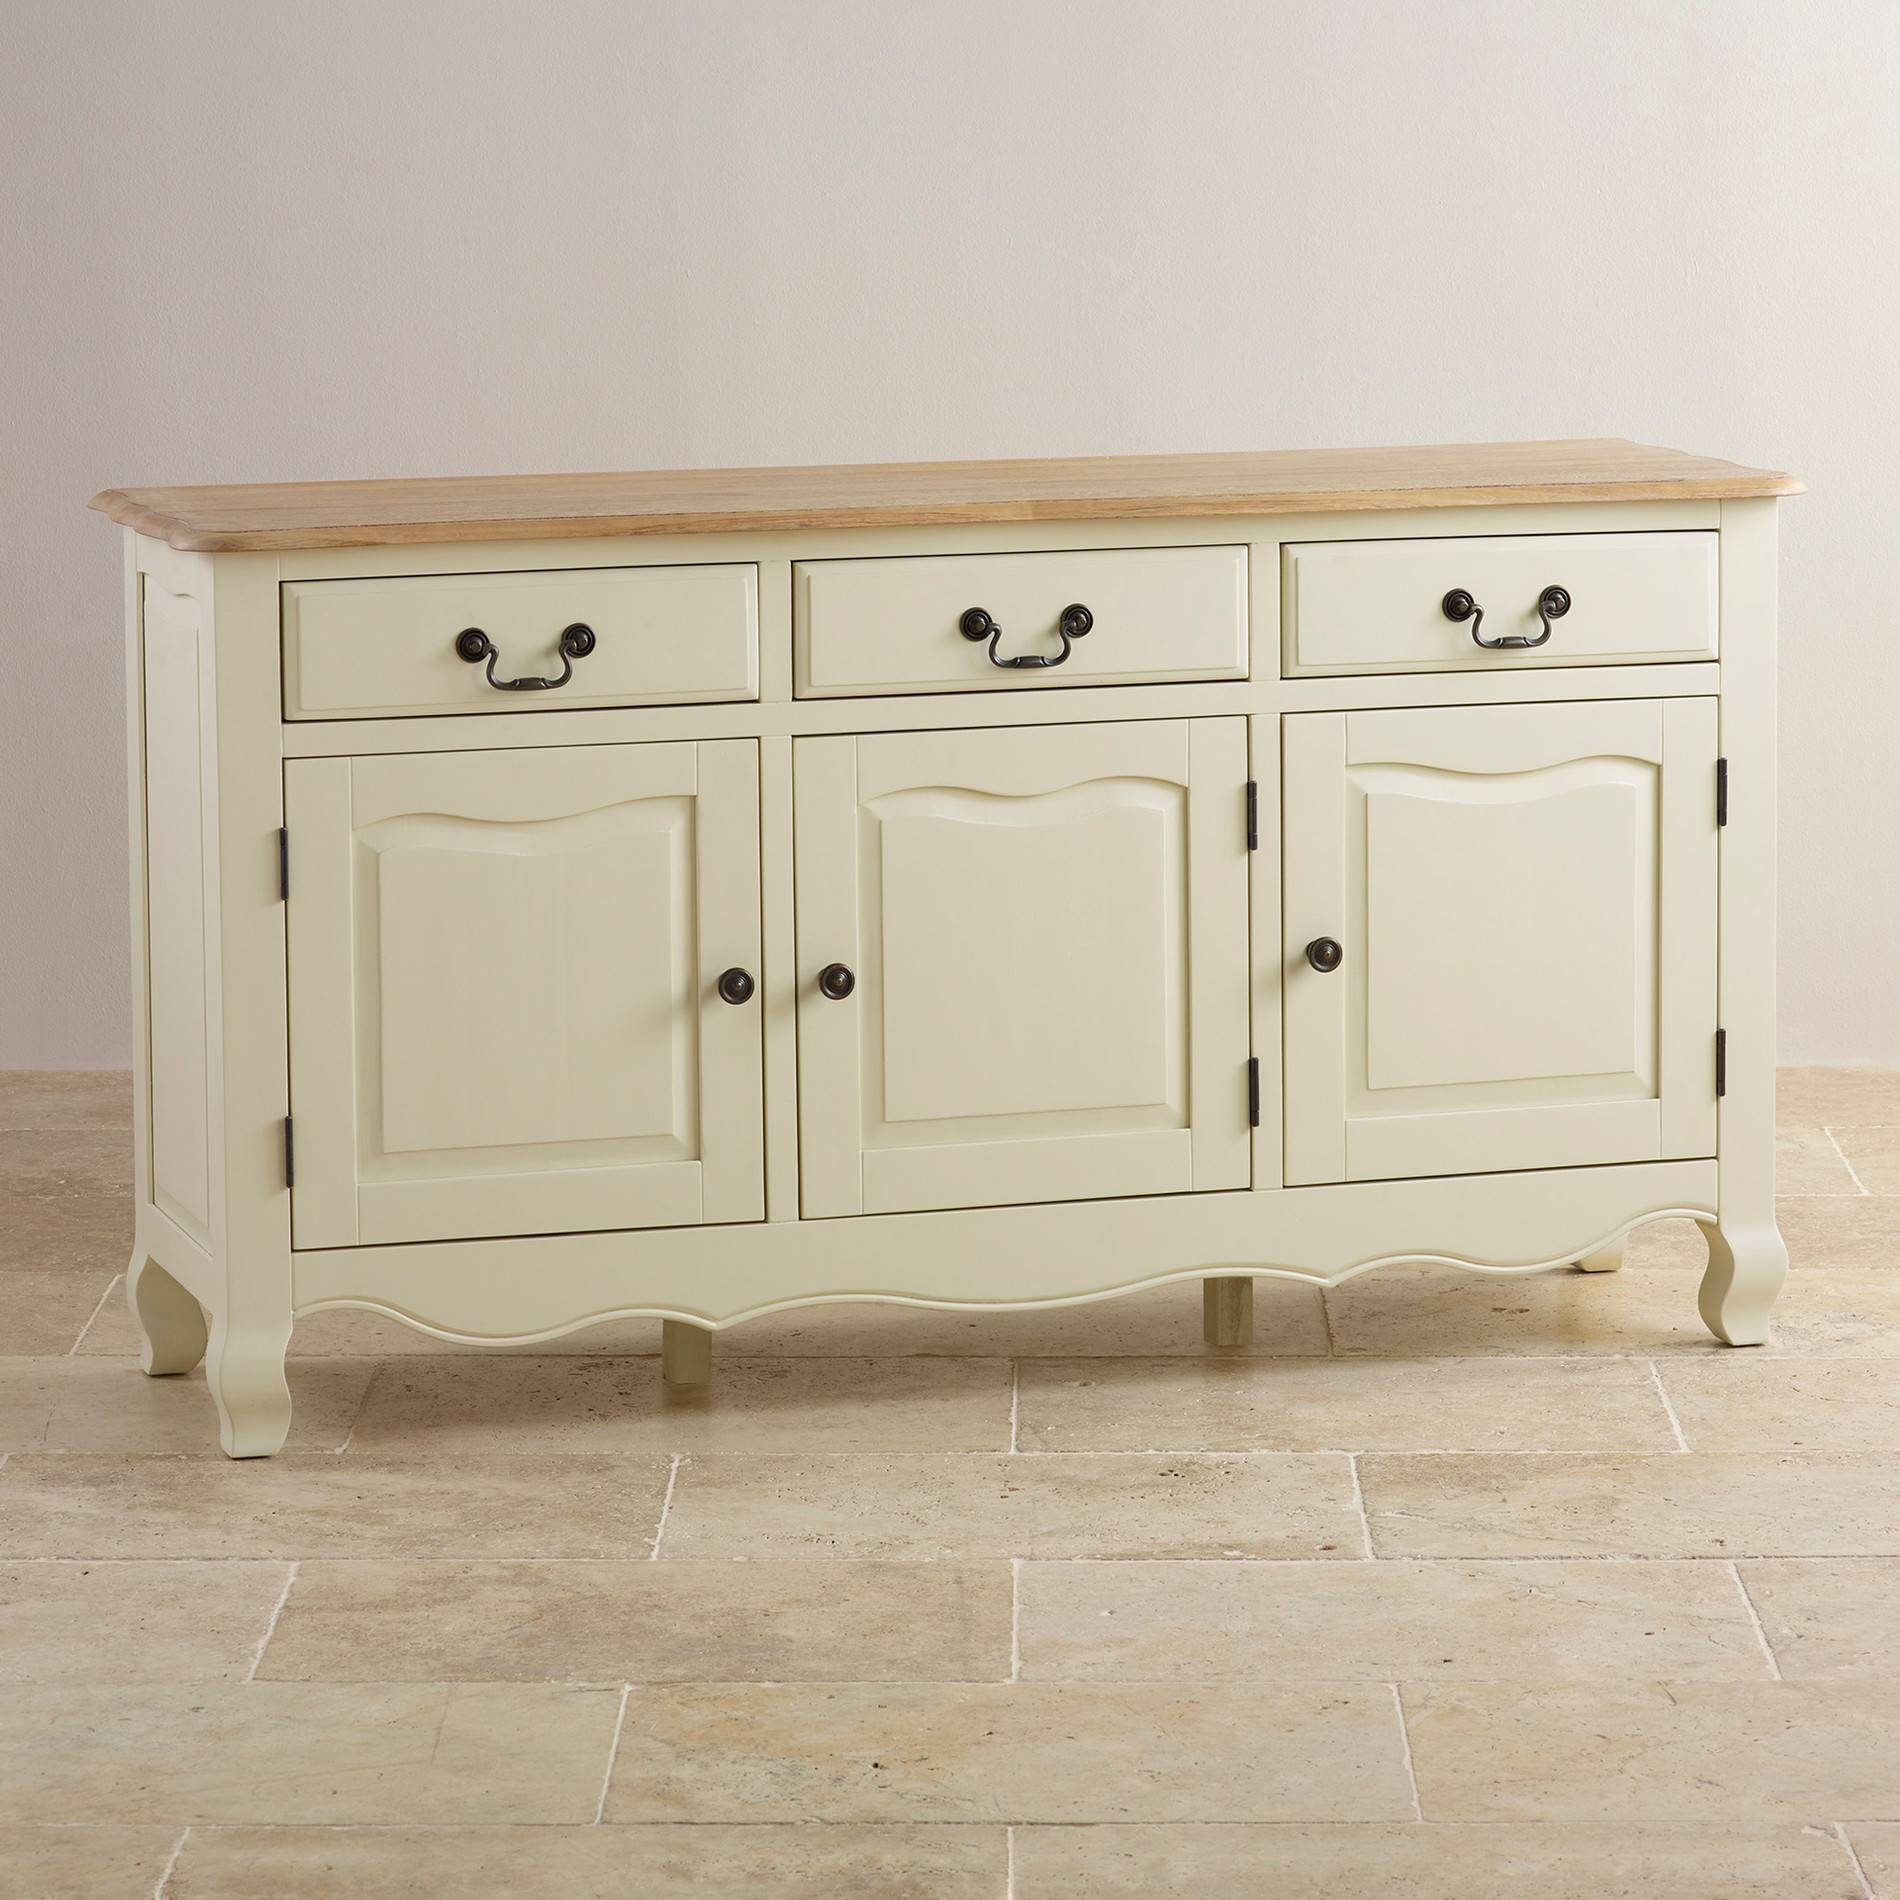 Sideboards | 100% Solid Hardwood | Oak Furniture Land with regard to White and Wood Sideboards (Image 21 of 30)